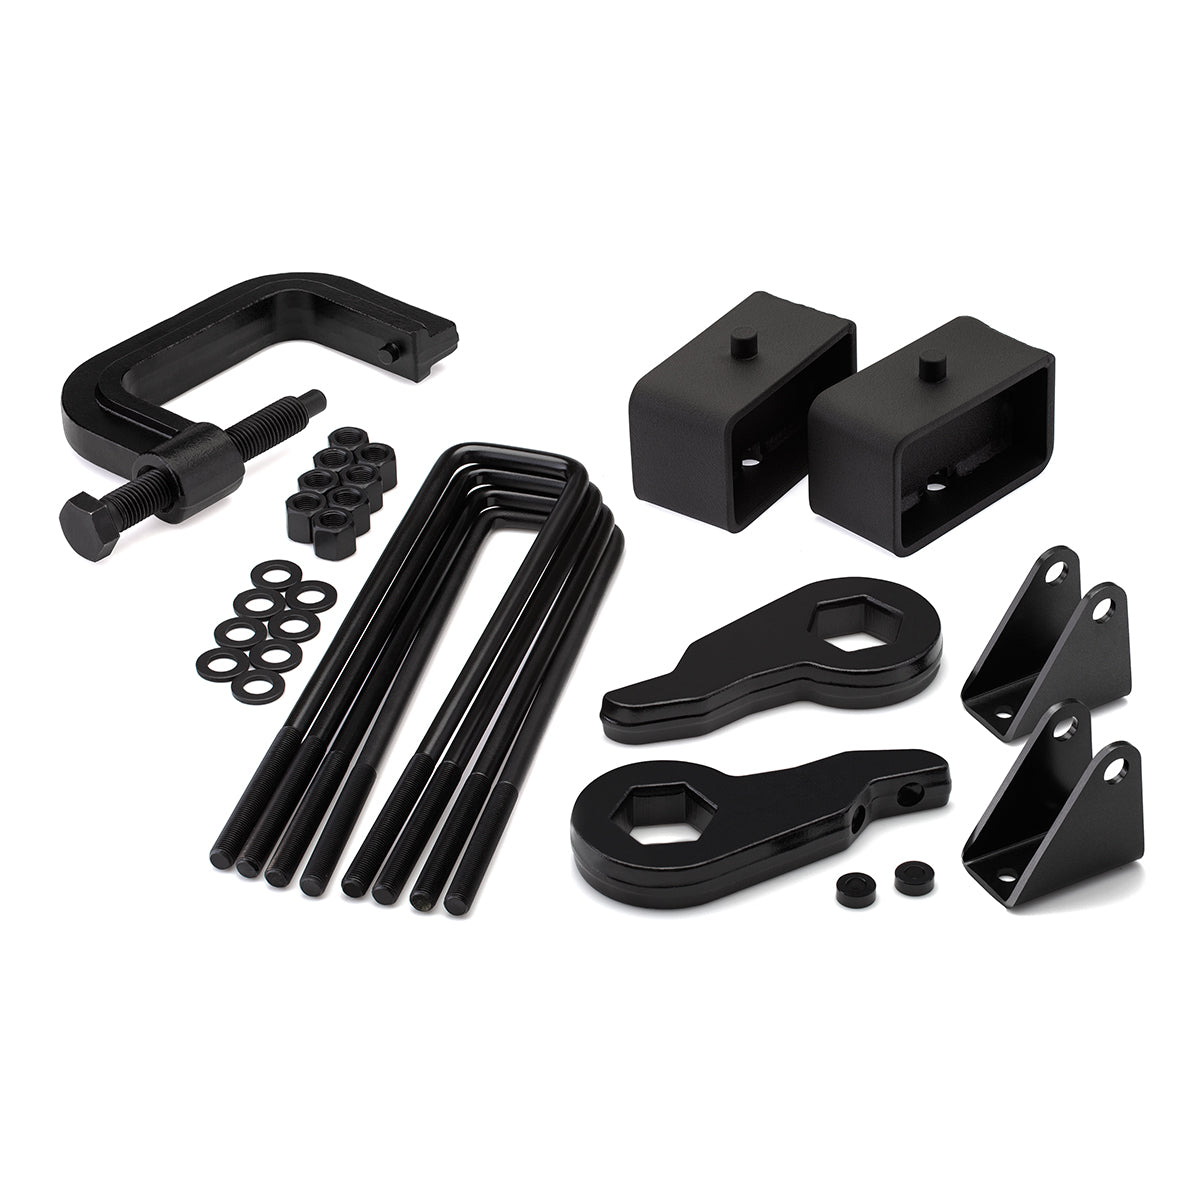 2000-2010 Chevy Silverado 2500HD Full Lift Kit with Shock Extender Brackets and Torsion Key Unloading/Removal Tool